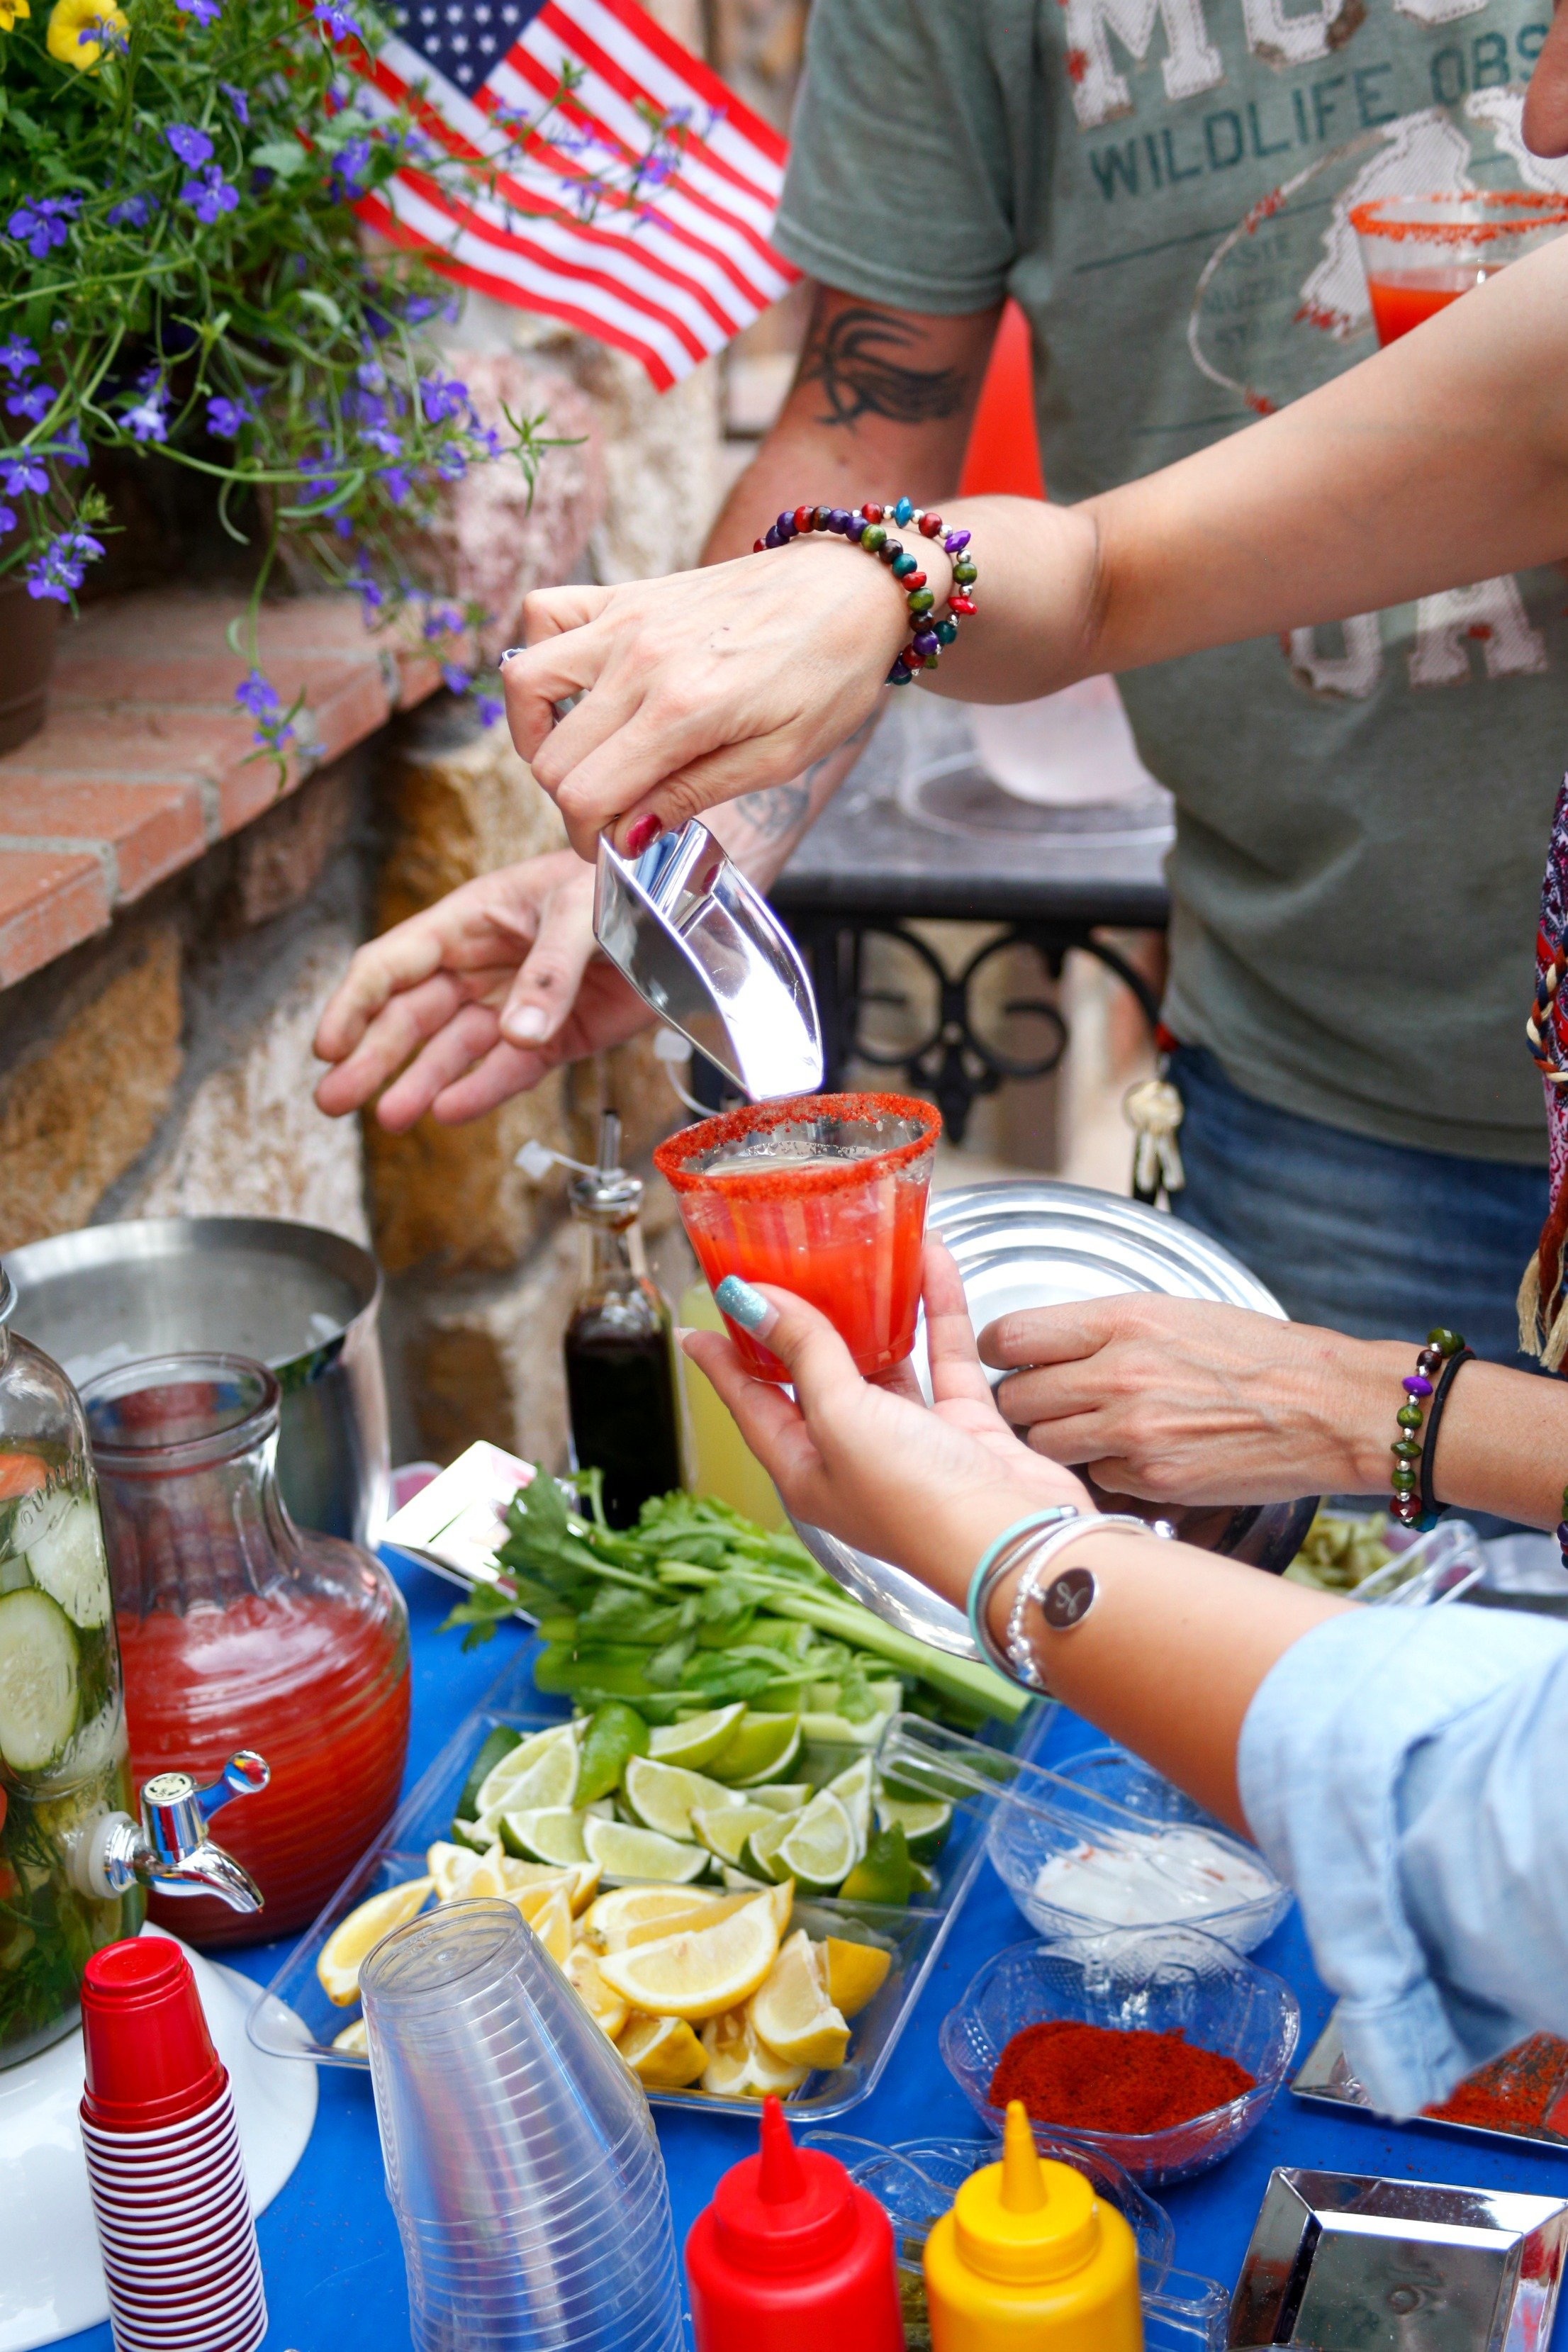 Set up a Bloody Mary bar so your guests can customize their ultimate Bloody Mary